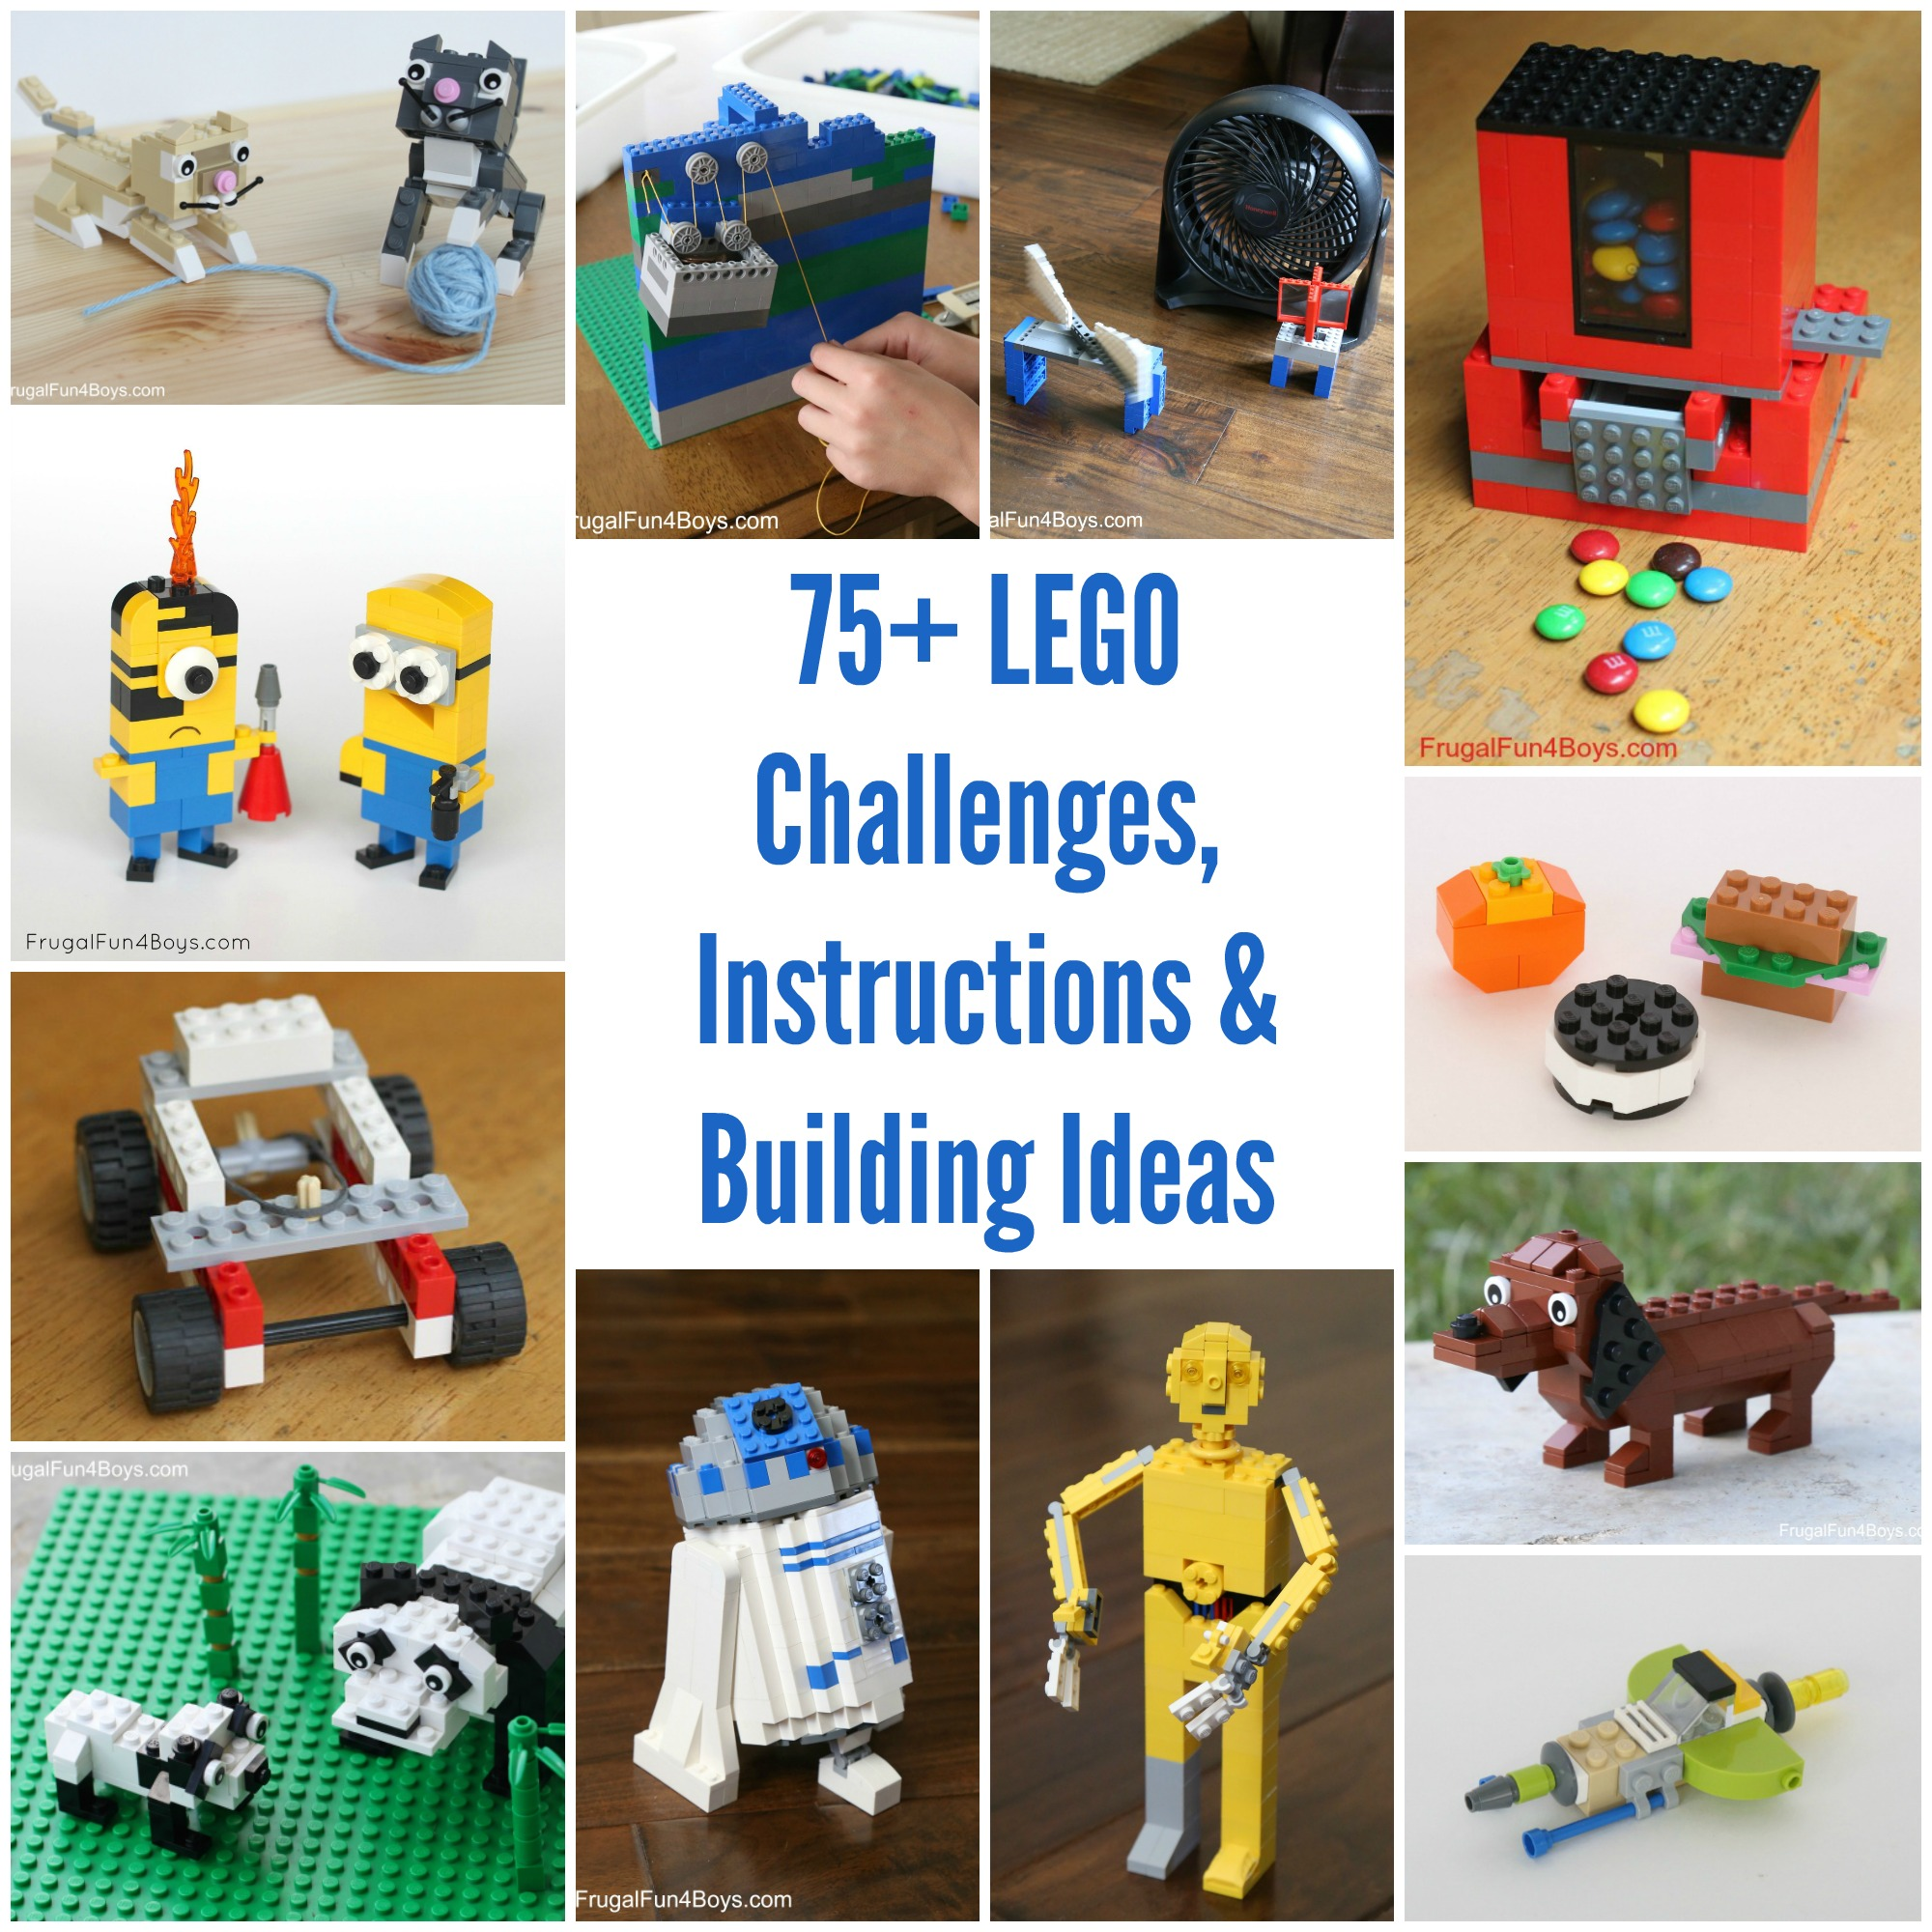 75+ LEGO Challenges, Instructions, Projects, and Ideas!